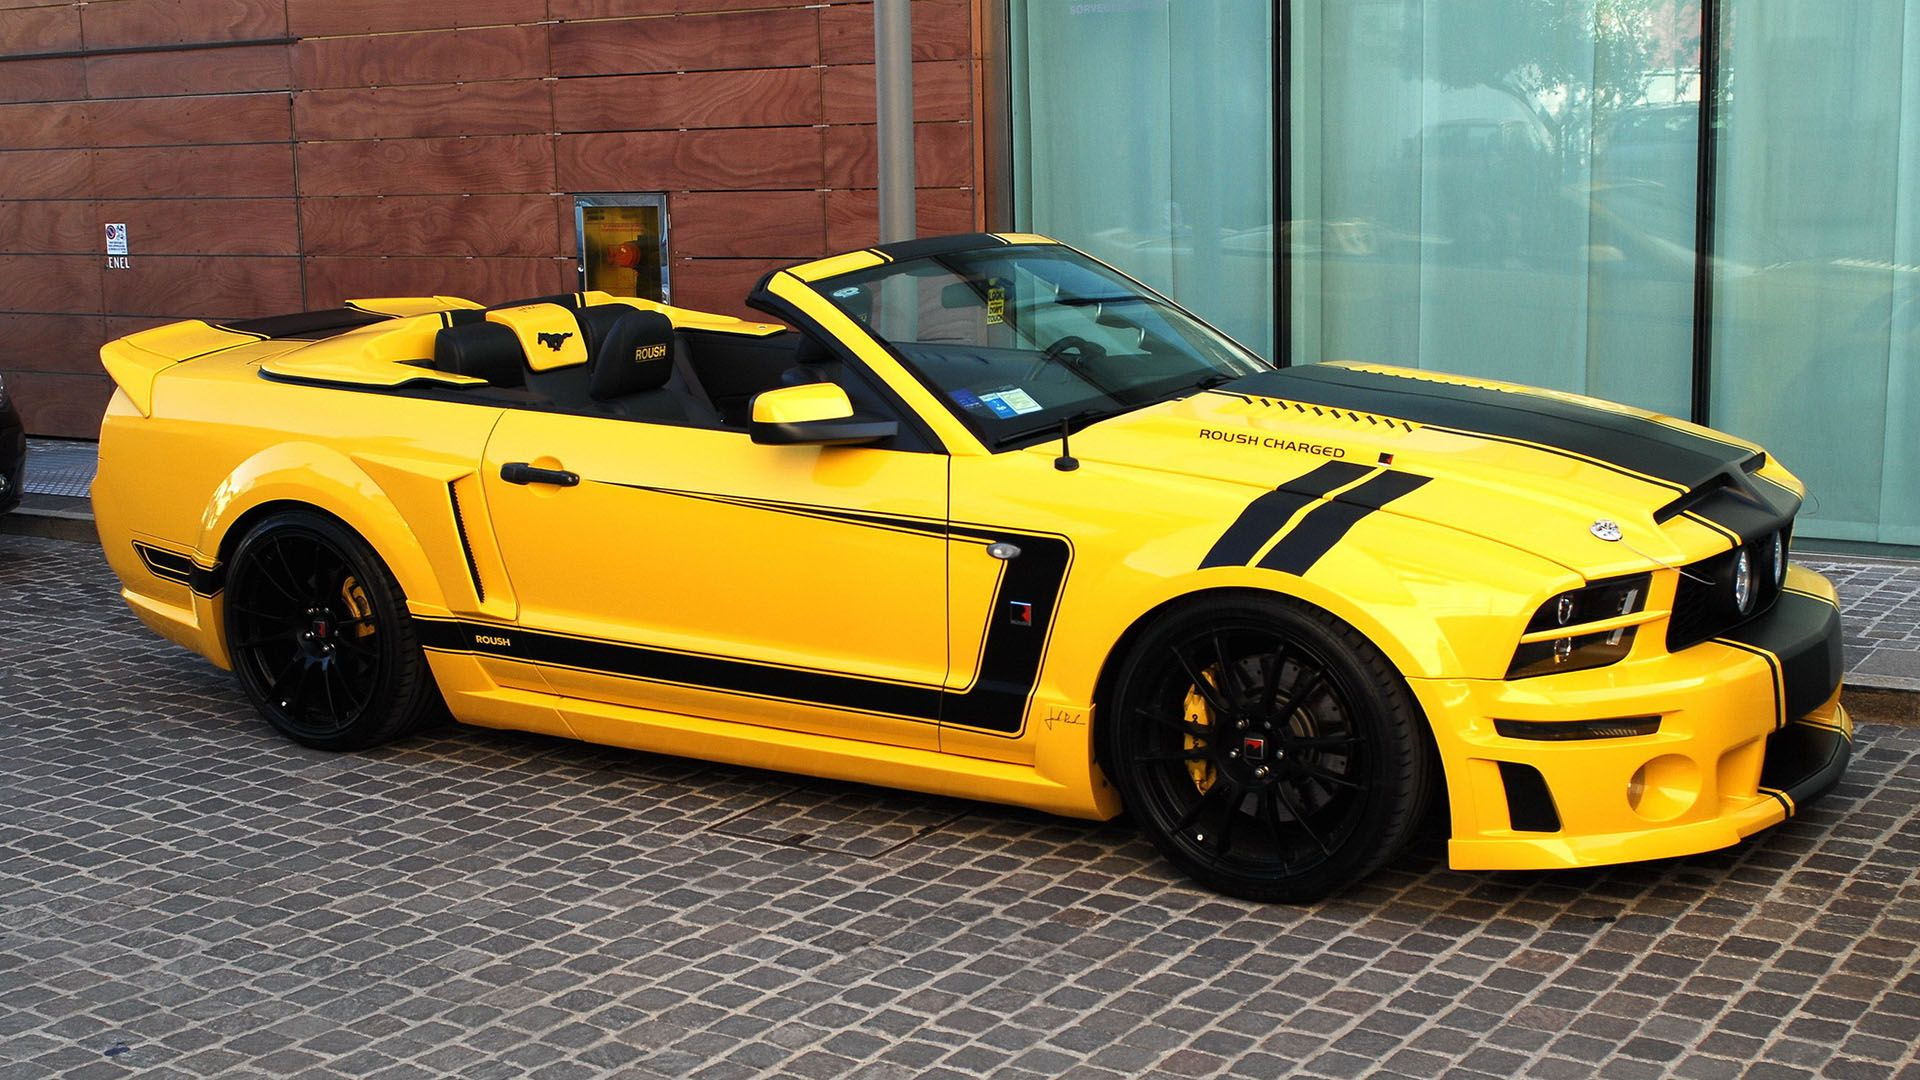 2014 mustang 5 0 file name 2014 ford mustang roush charged 5 0 yellow wallpaper cars. Black Bedroom Furniture Sets. Home Design Ideas